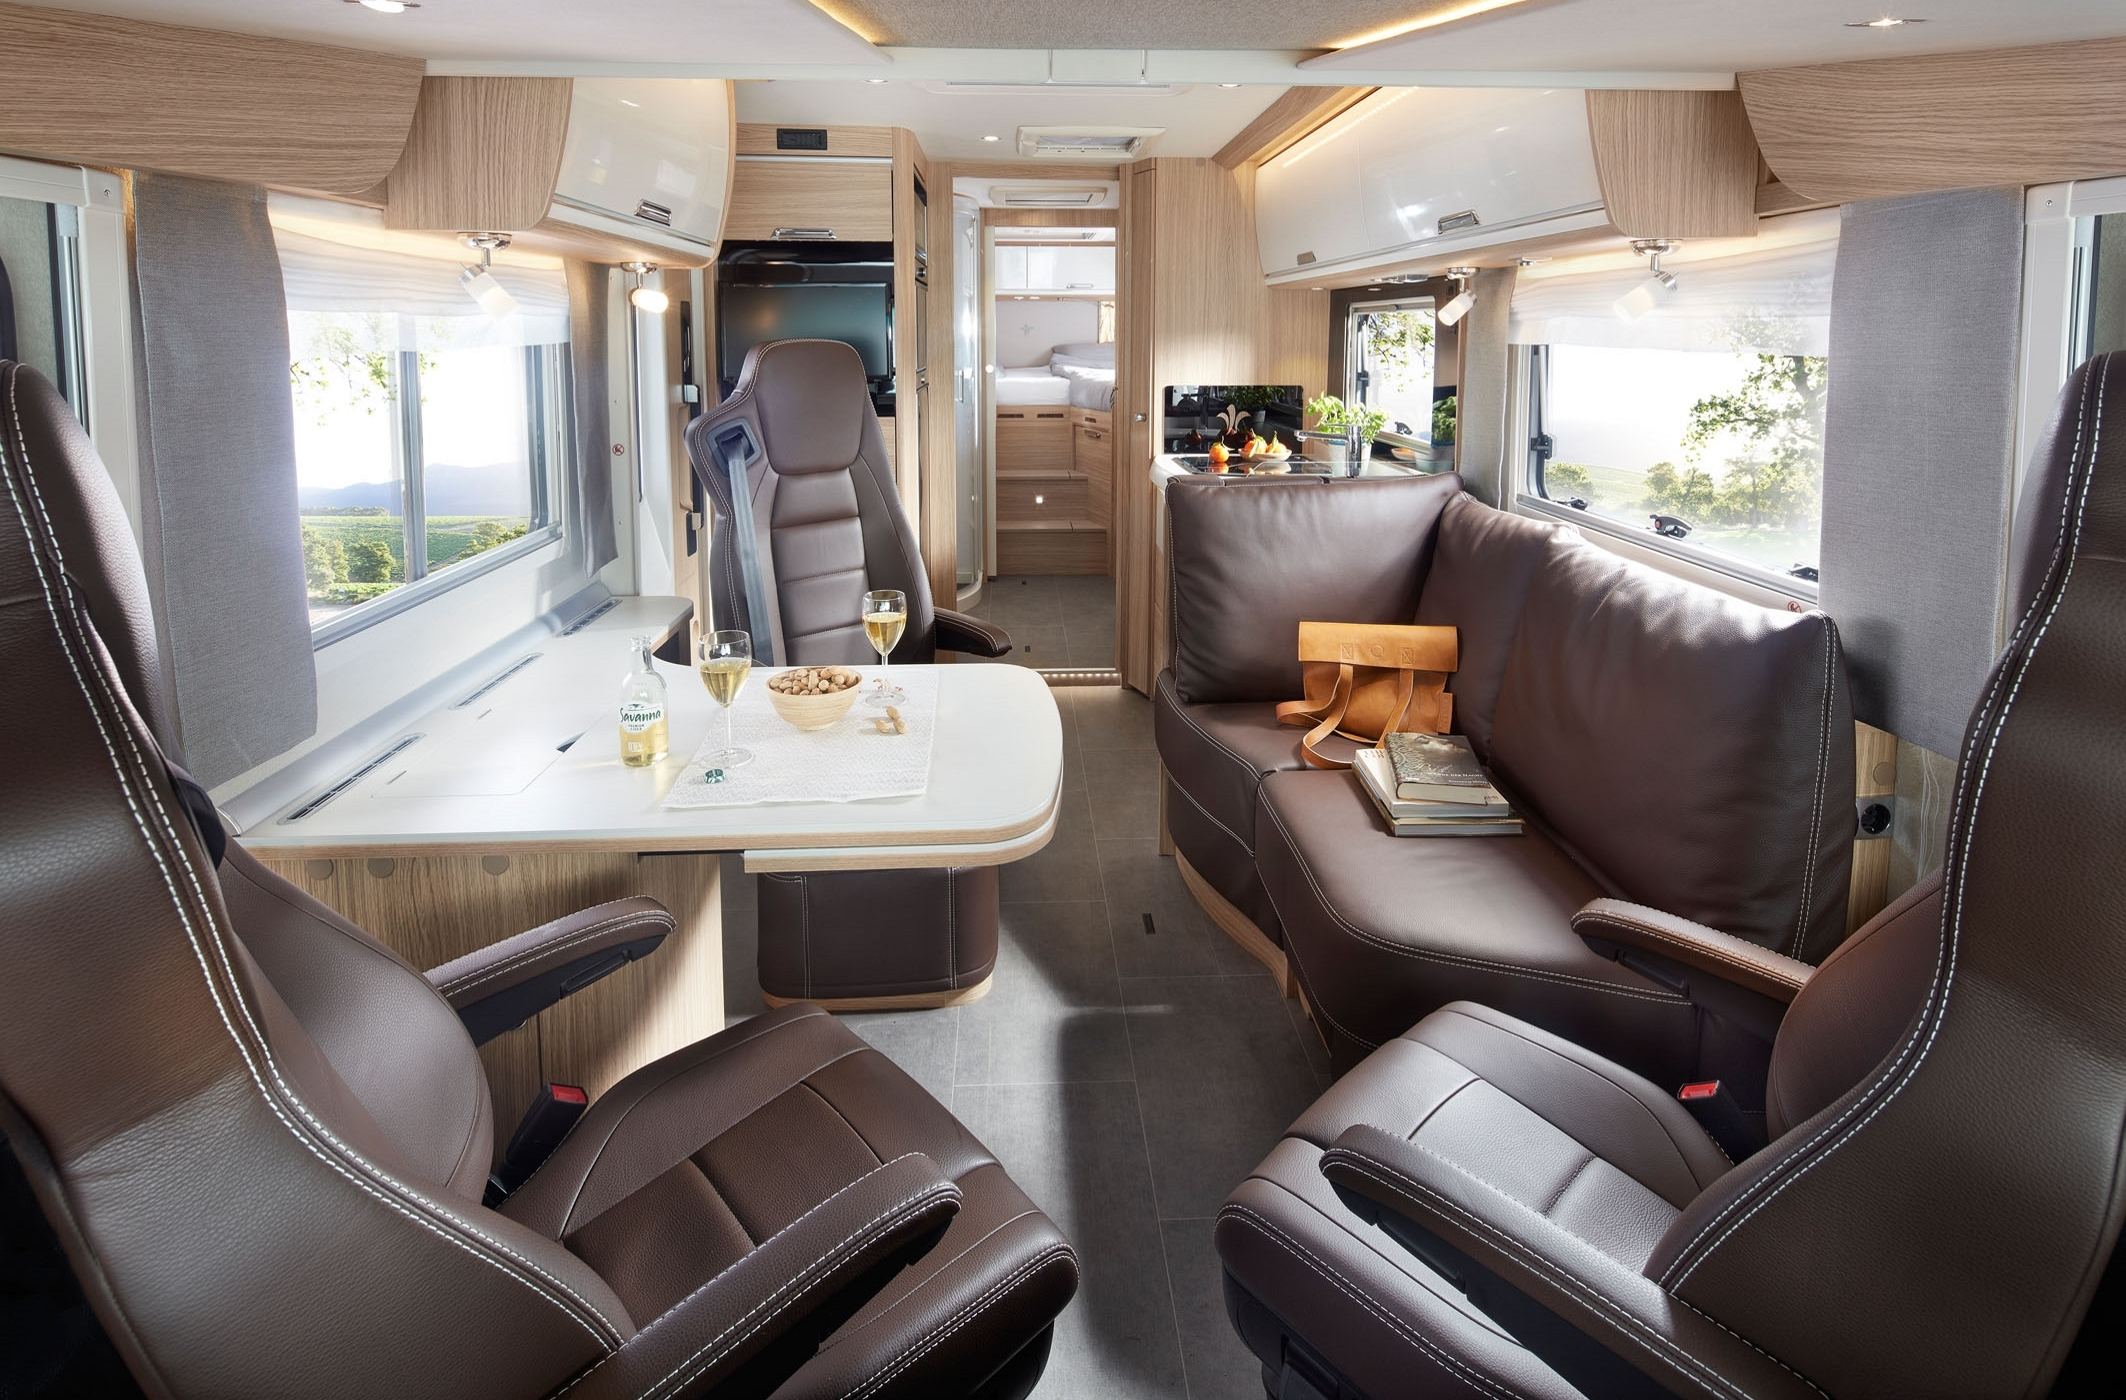 NIESMANN+BISCHOFF - Arto - Arto 88 B - Layout with bar version in the luxury segment